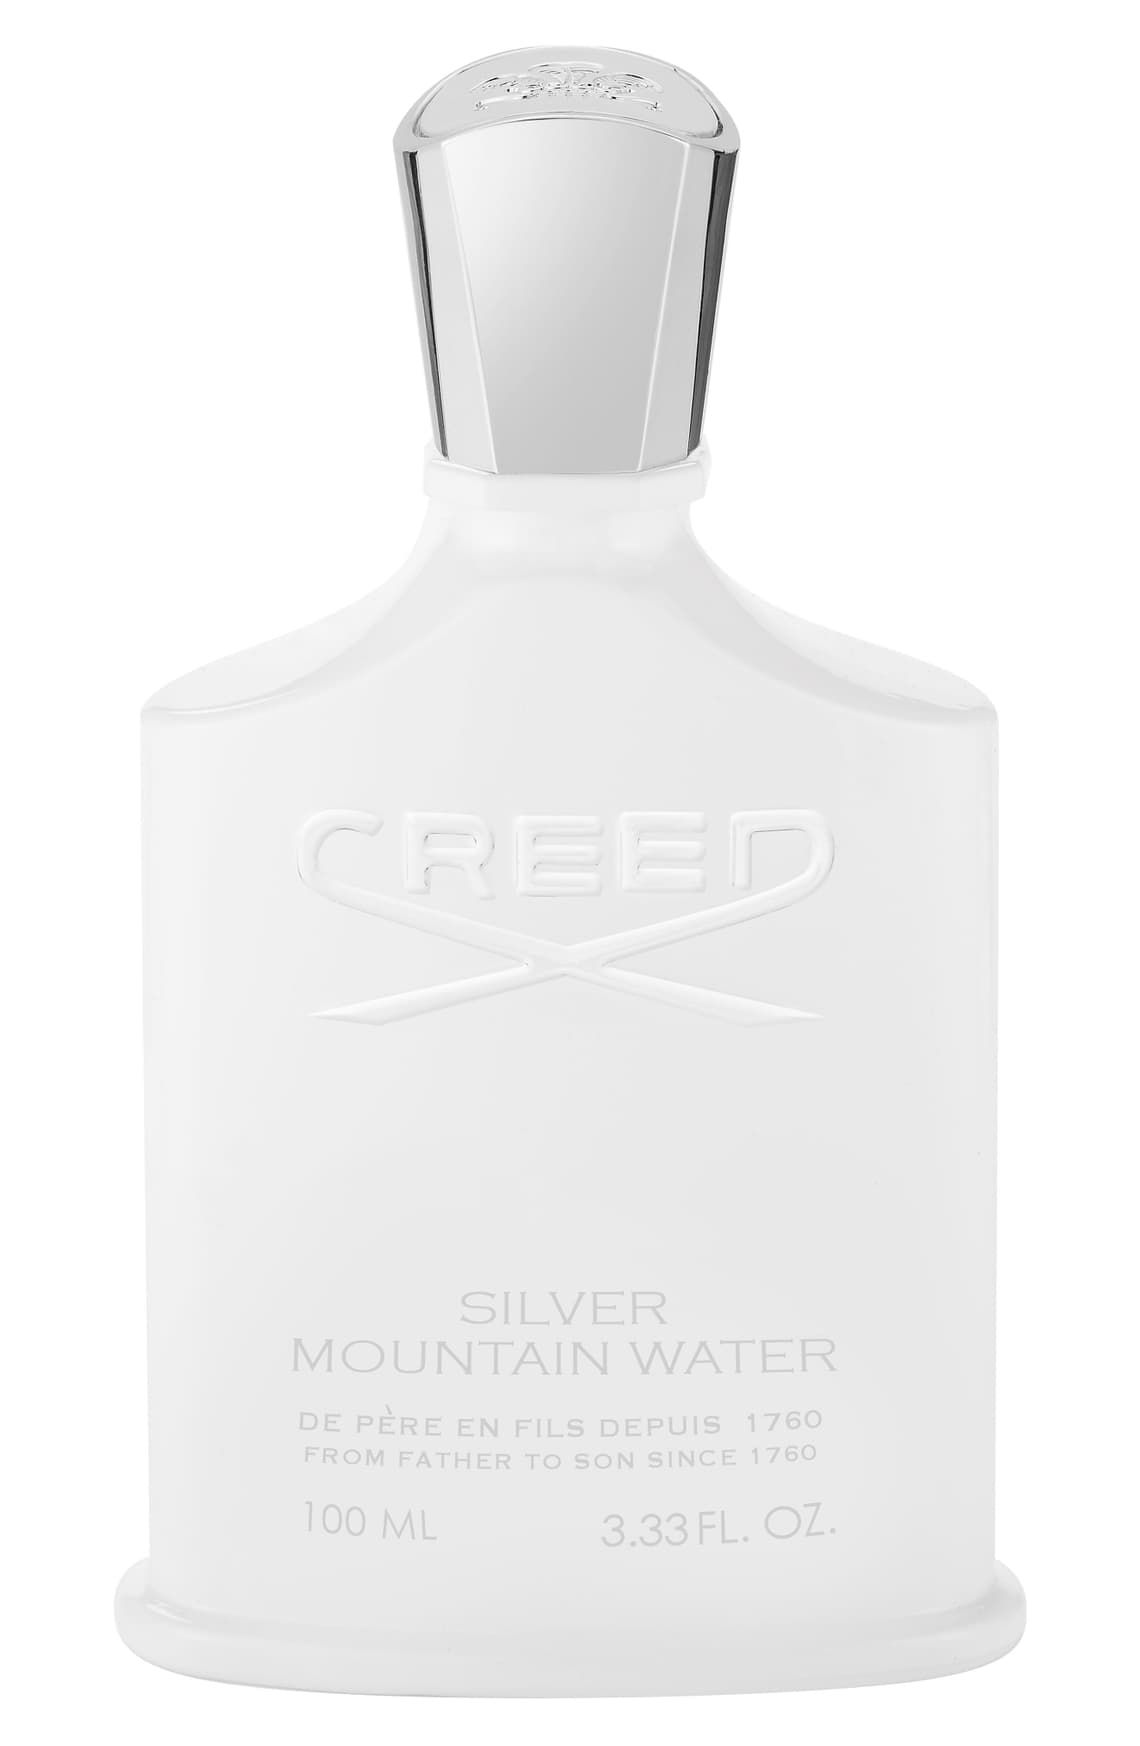 Creed Silver Mountain Water Fragrance In 2020 Fragrance Creed